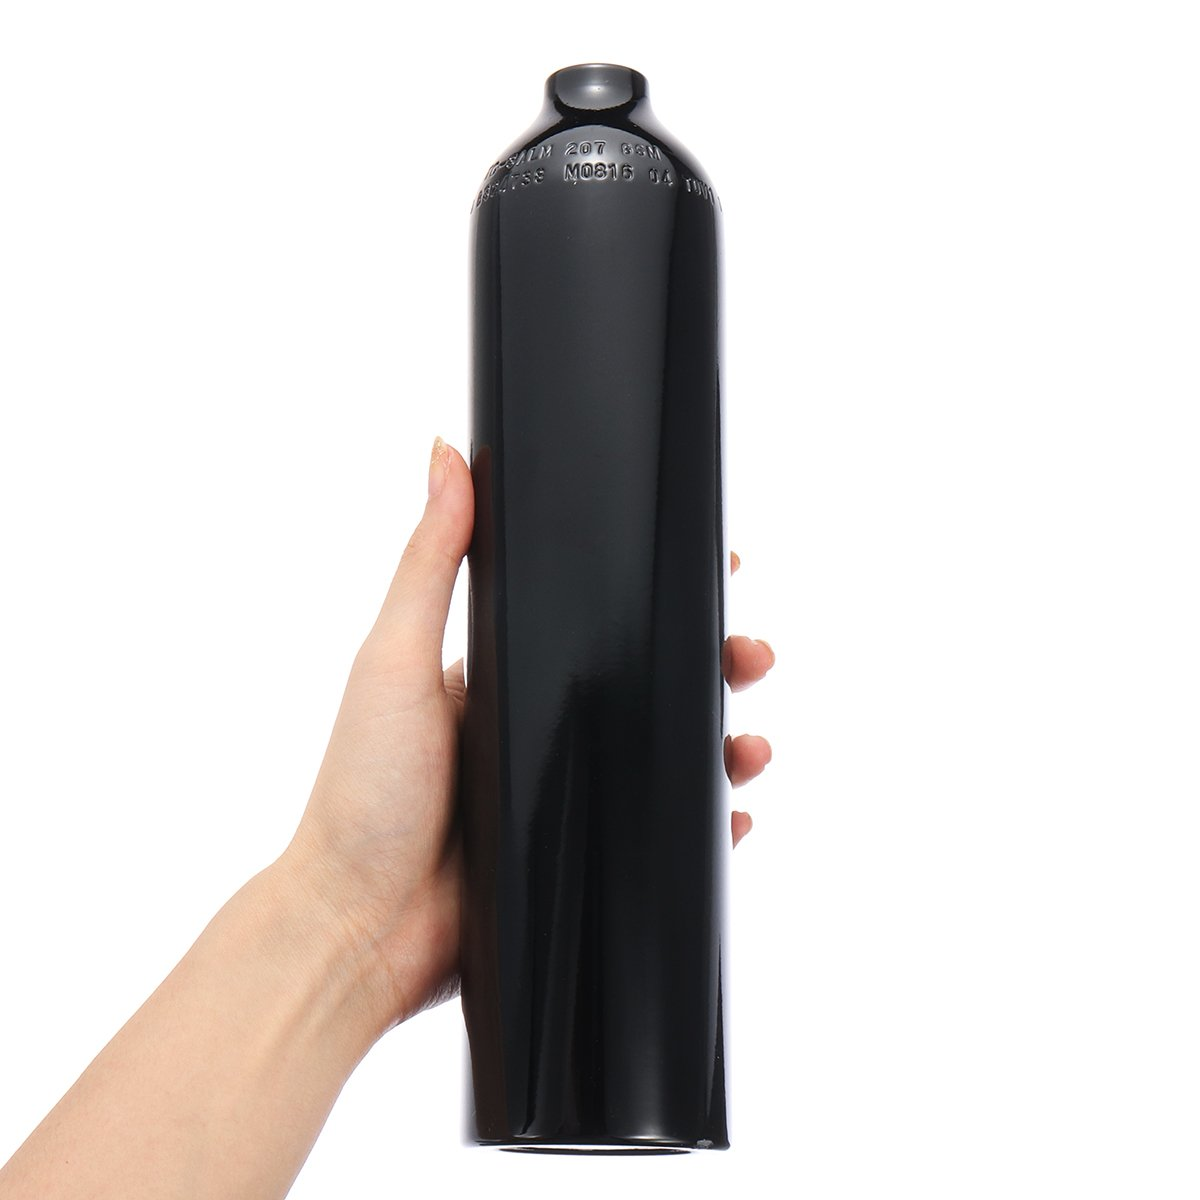 0.5L 5/8-18UNF Aluminum Tank Air Cyclinder Bottle 3000 PSI For Paintball PCP''